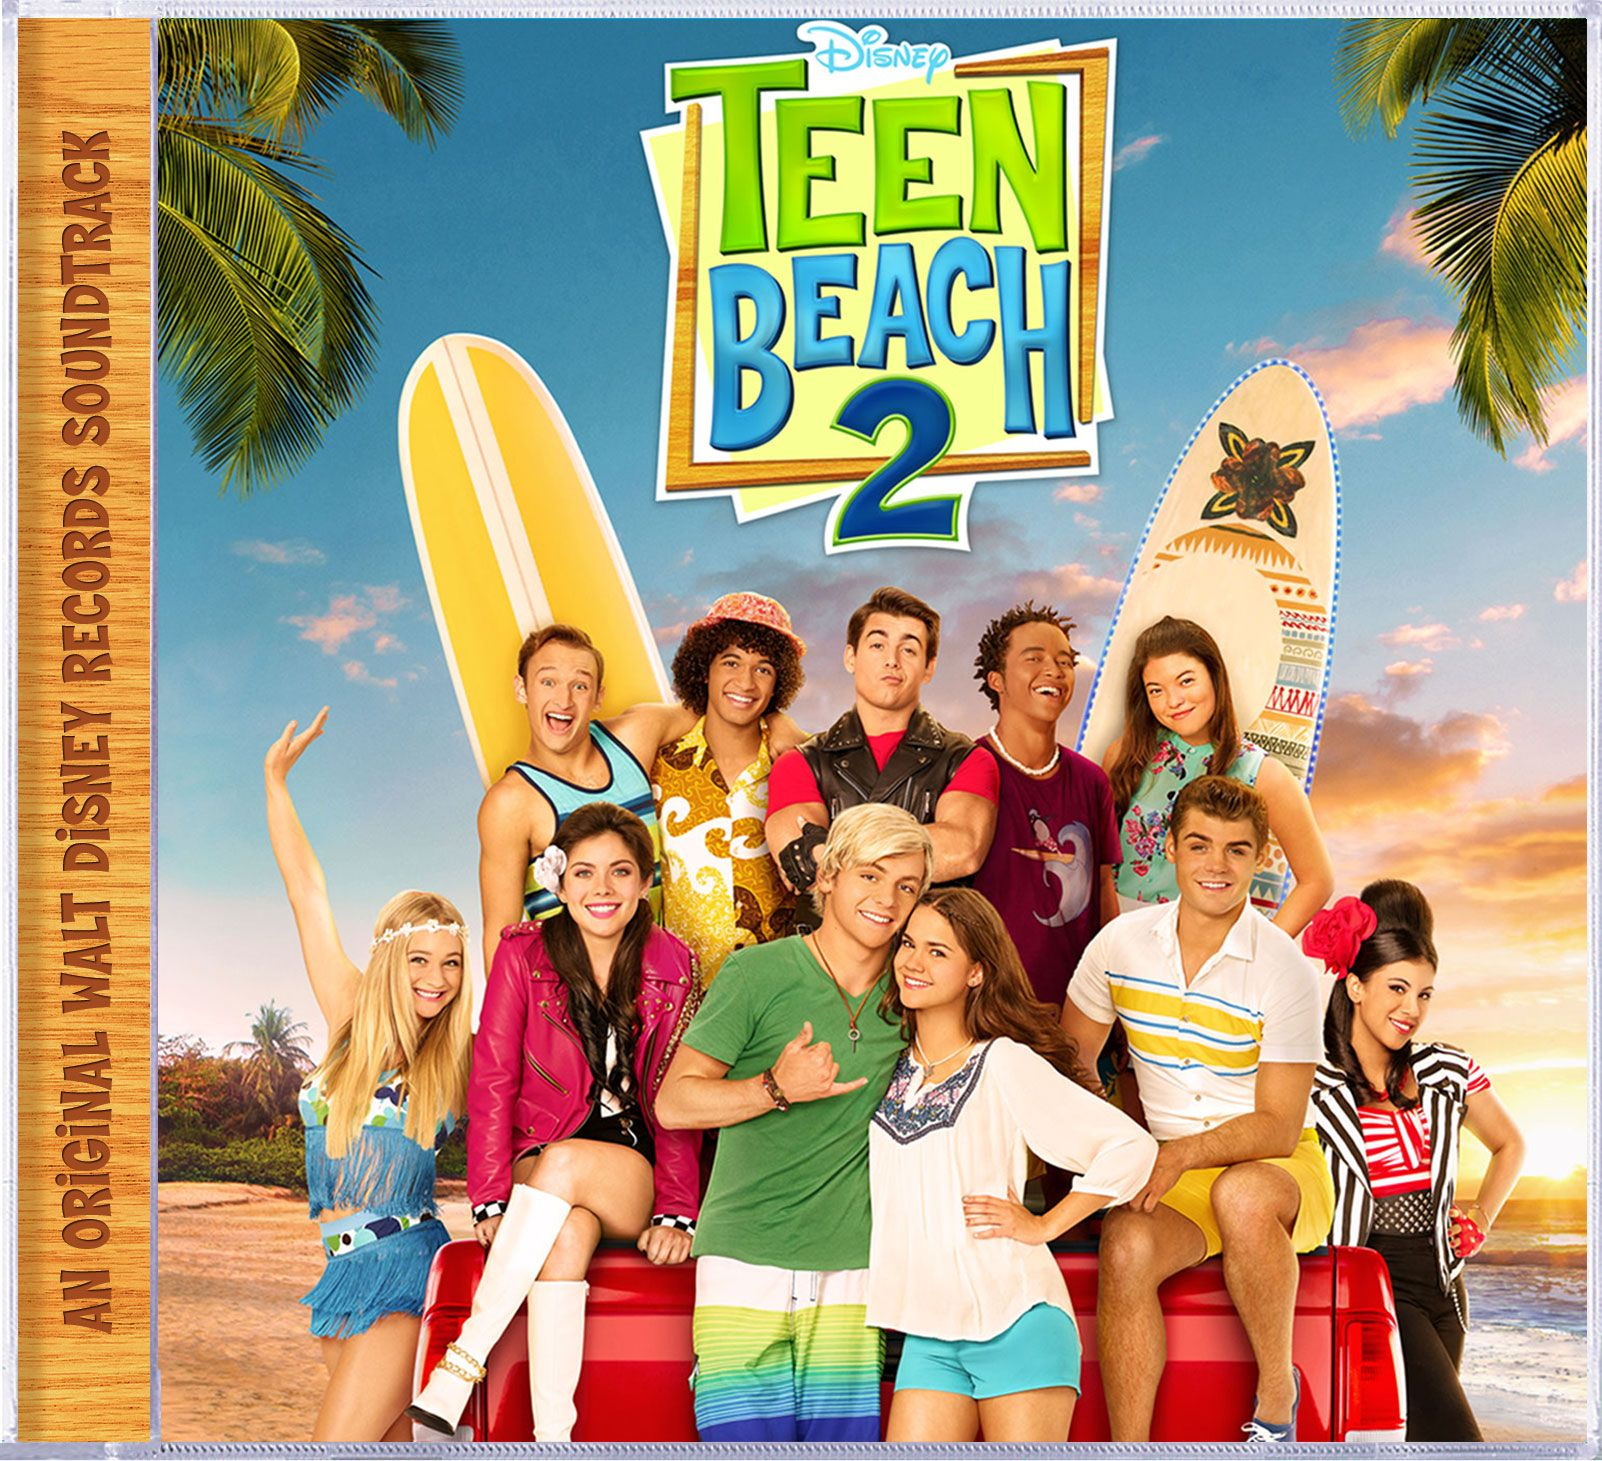 Lela Teen Beach Movie Wallpaper - WallsKid